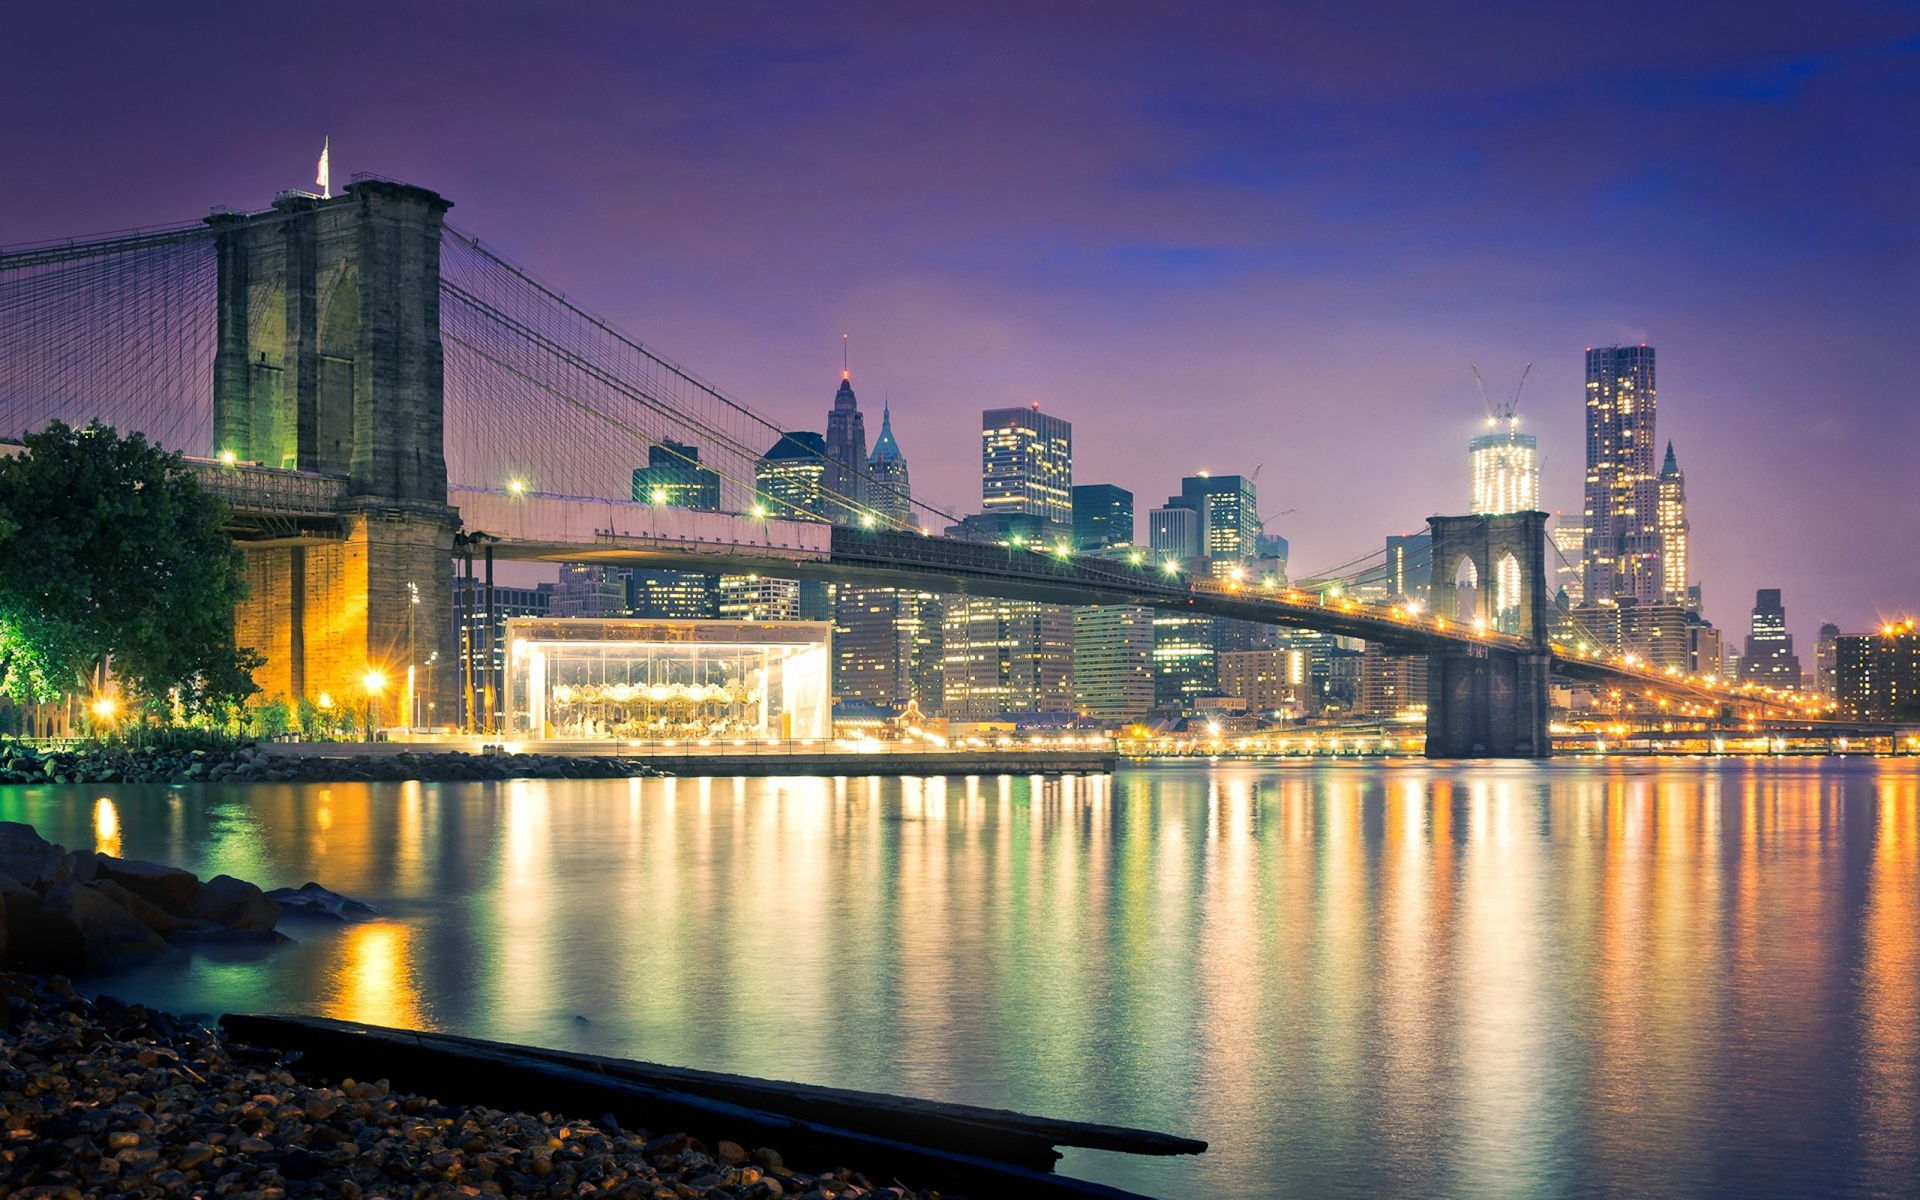 New York Wall Murals For Bedrooms Brooklyn Bridge Nights Wallpapers 53 Wallpapers